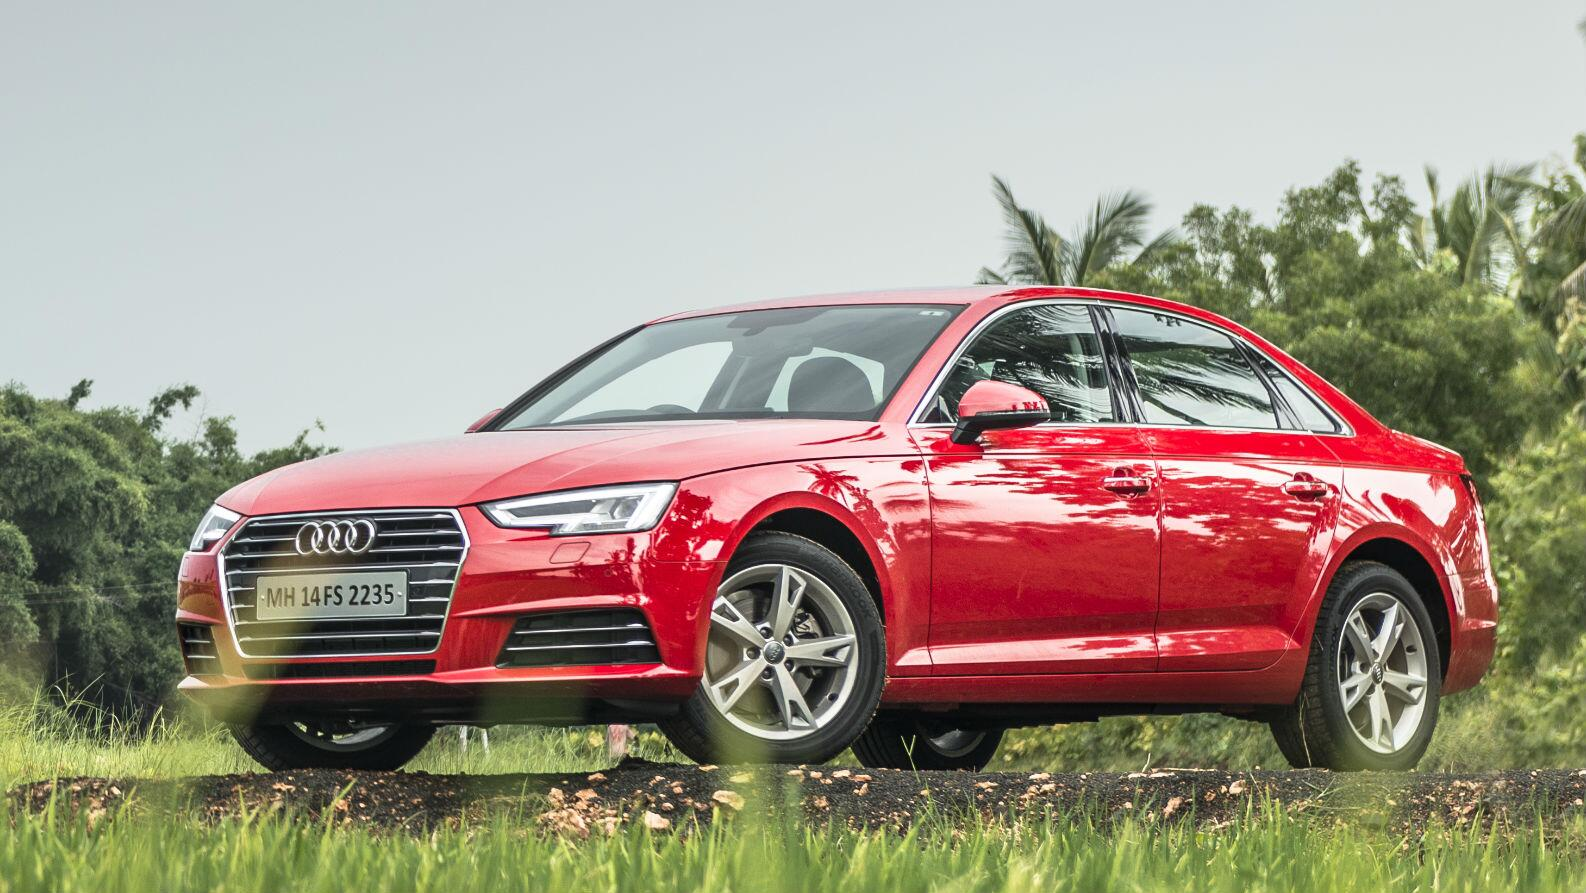 new audi a4 launched - car news - bbc topgear magazine india